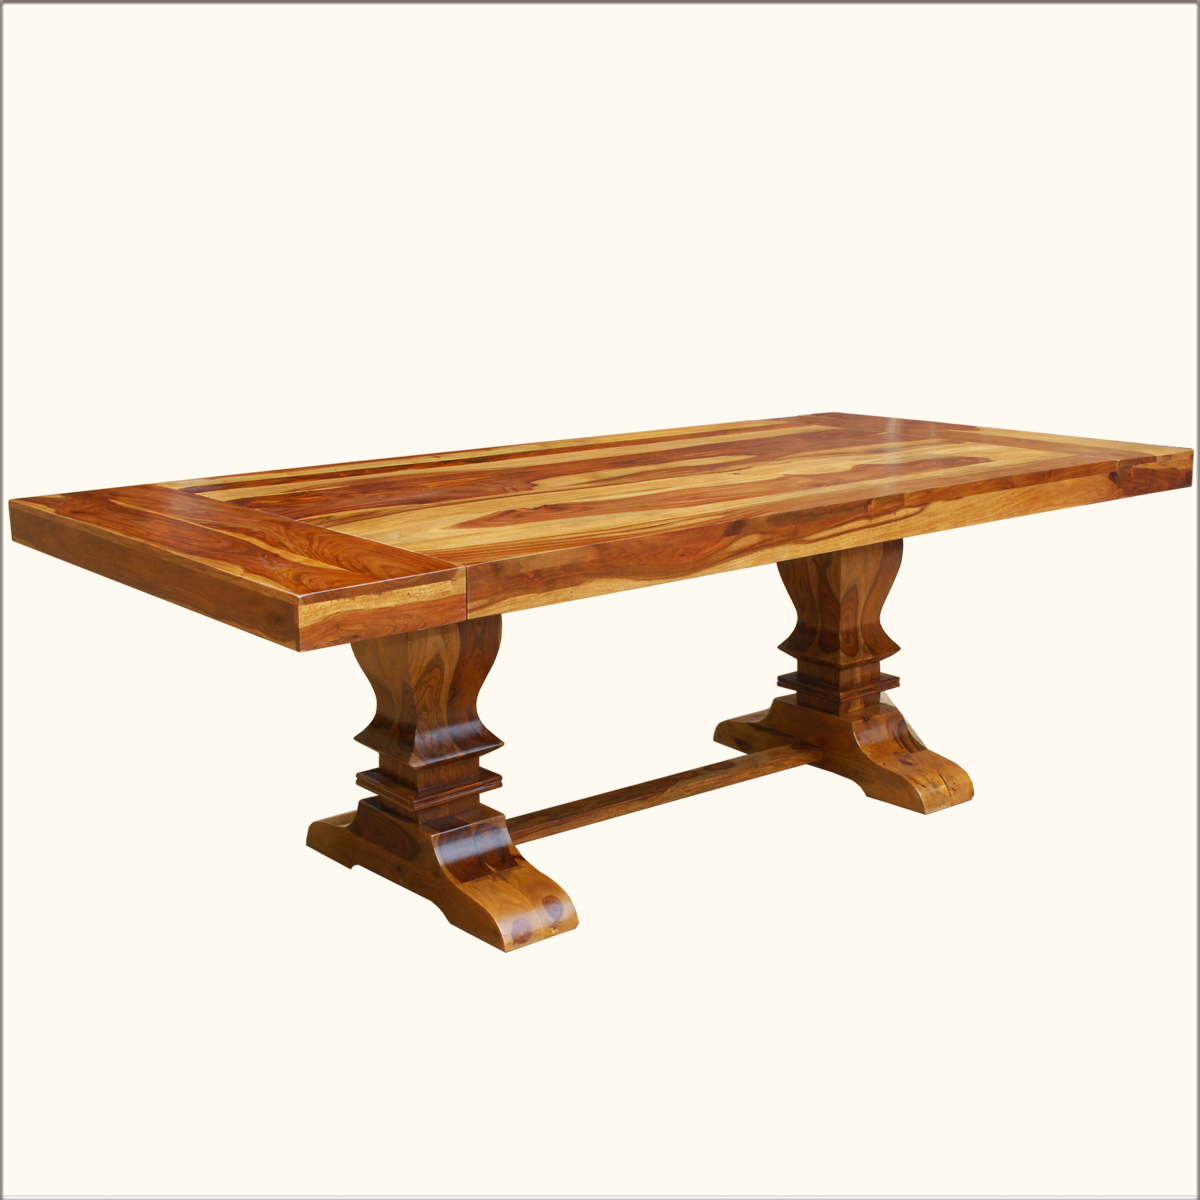 Large Trestle Pedestal Dining Table Extension For 10 Seats Solid Wood Furniture